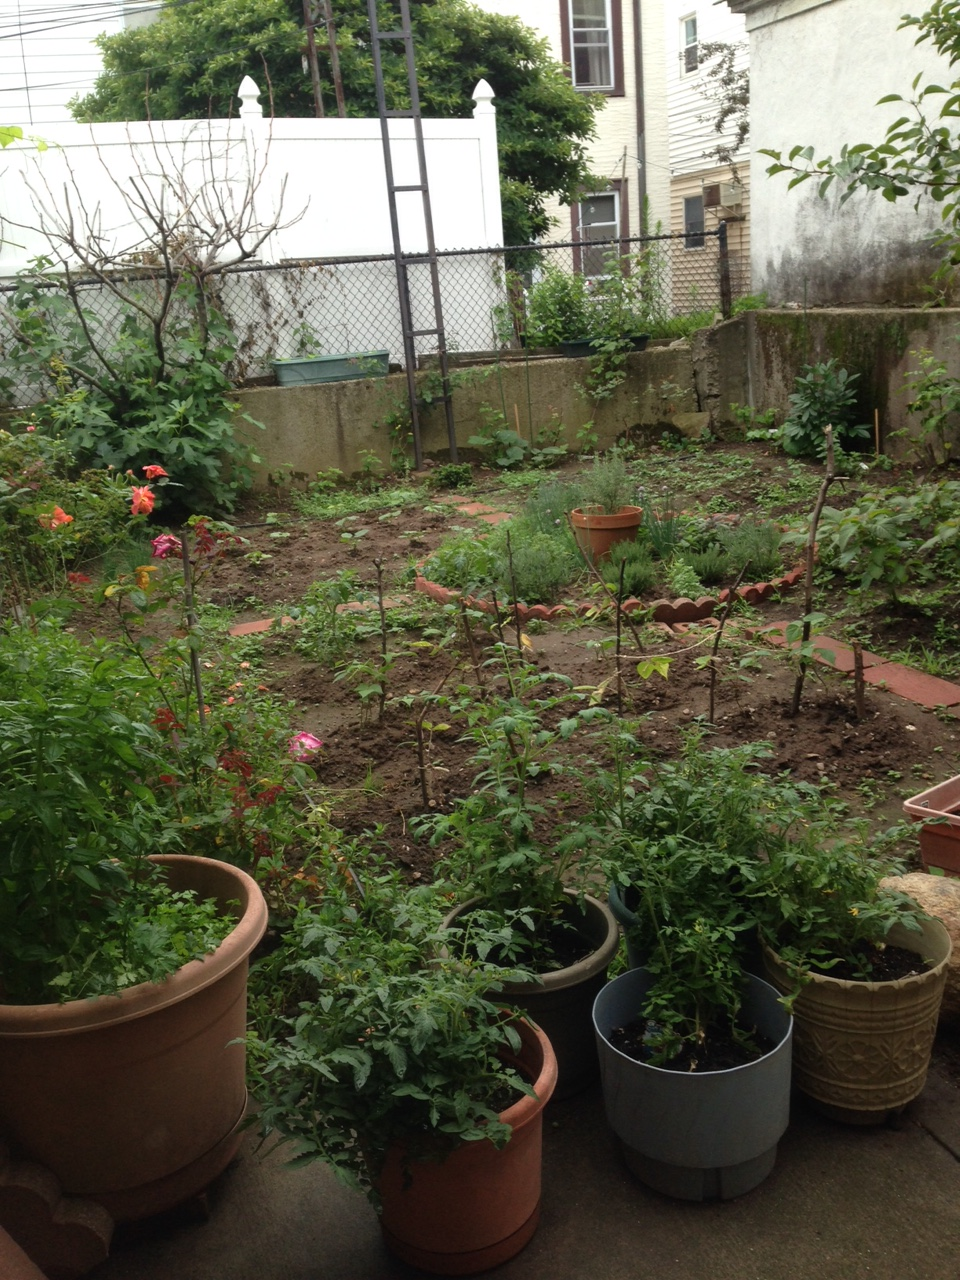 One month after, the garden on july 9th